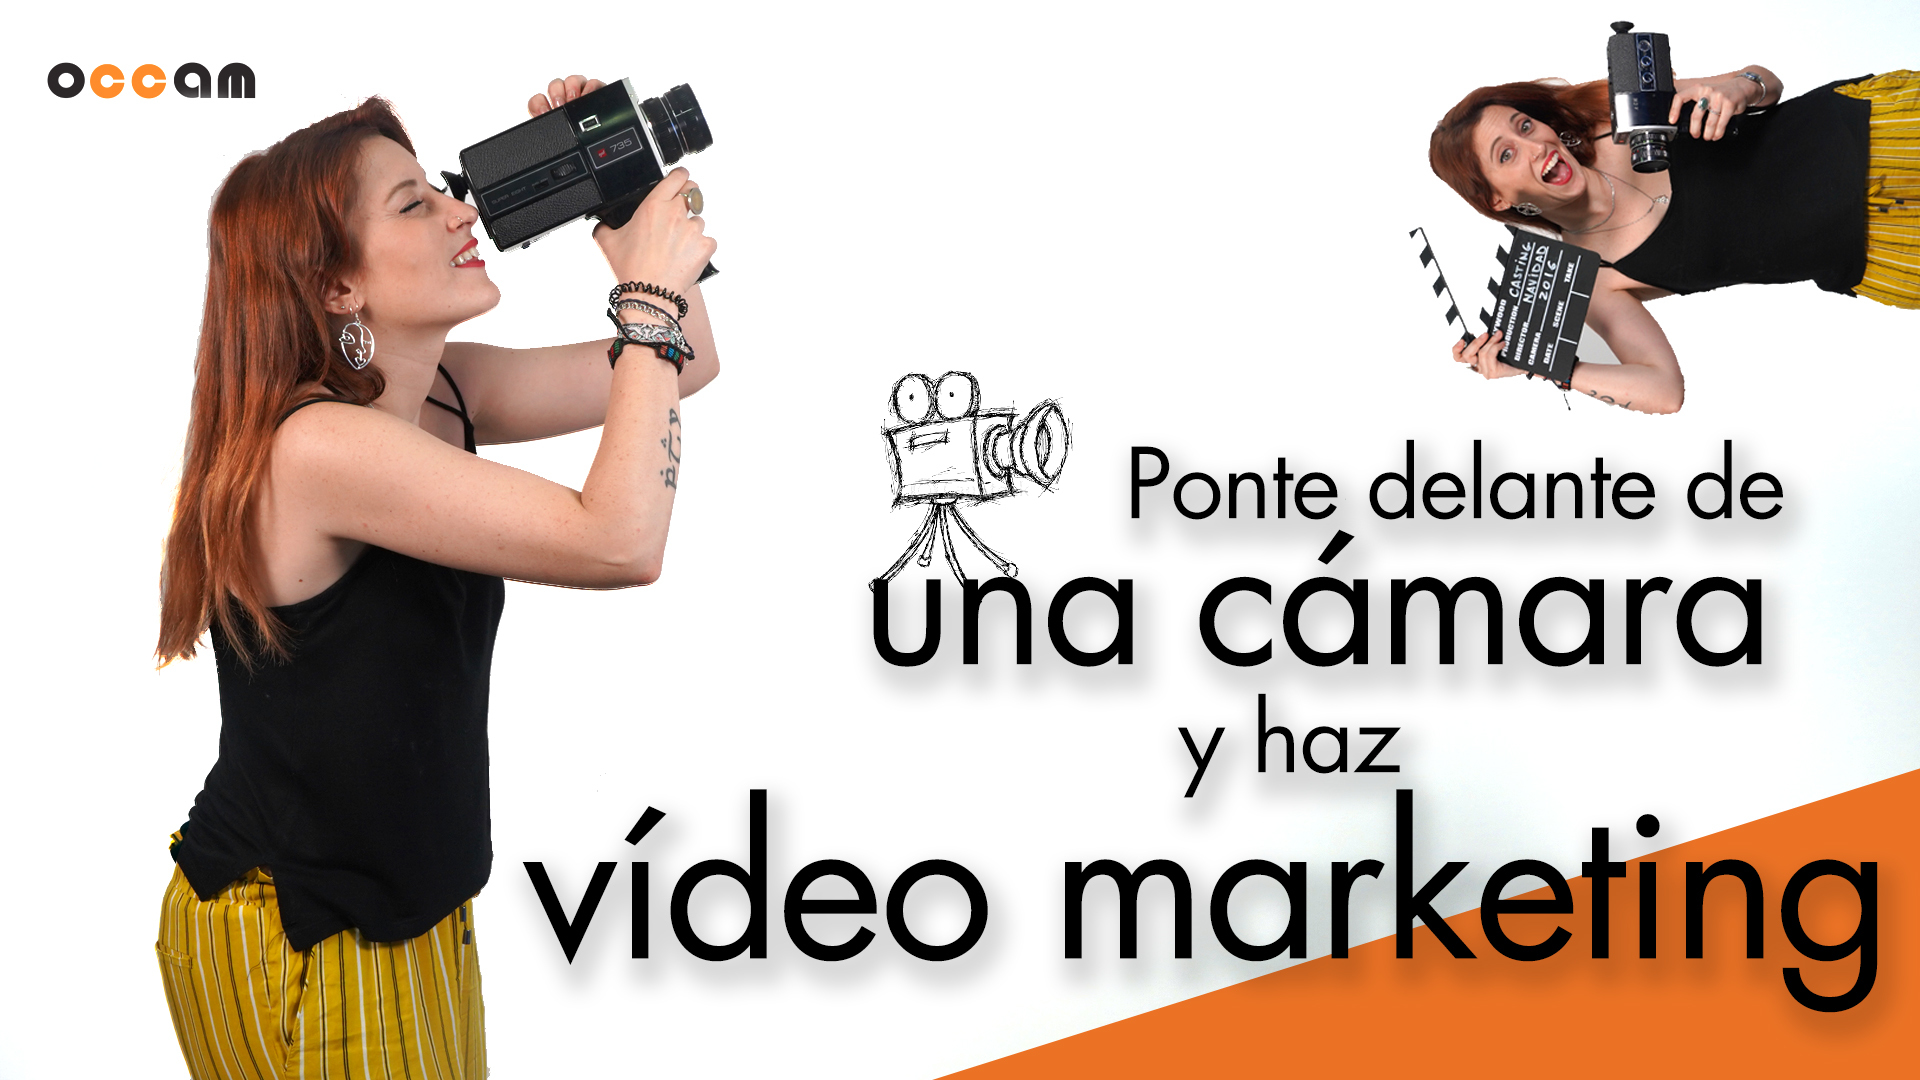 como utilizar video en una estrategia de marketing para las empresas_v3_VIDEO